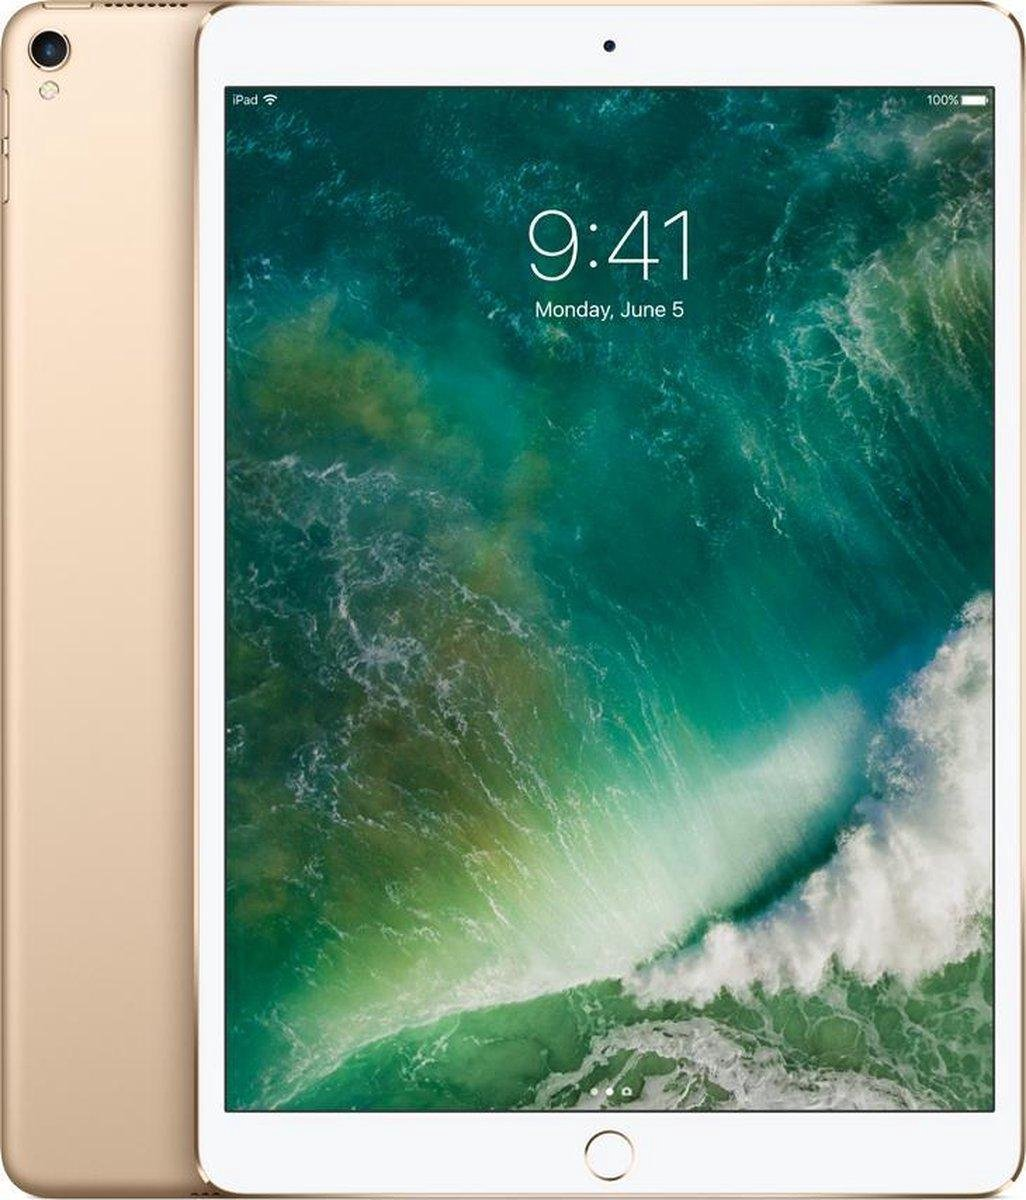 Apple Ipad pro 12.9 128gb wifi 2015 Gold refurbished A grade door Cathcomm